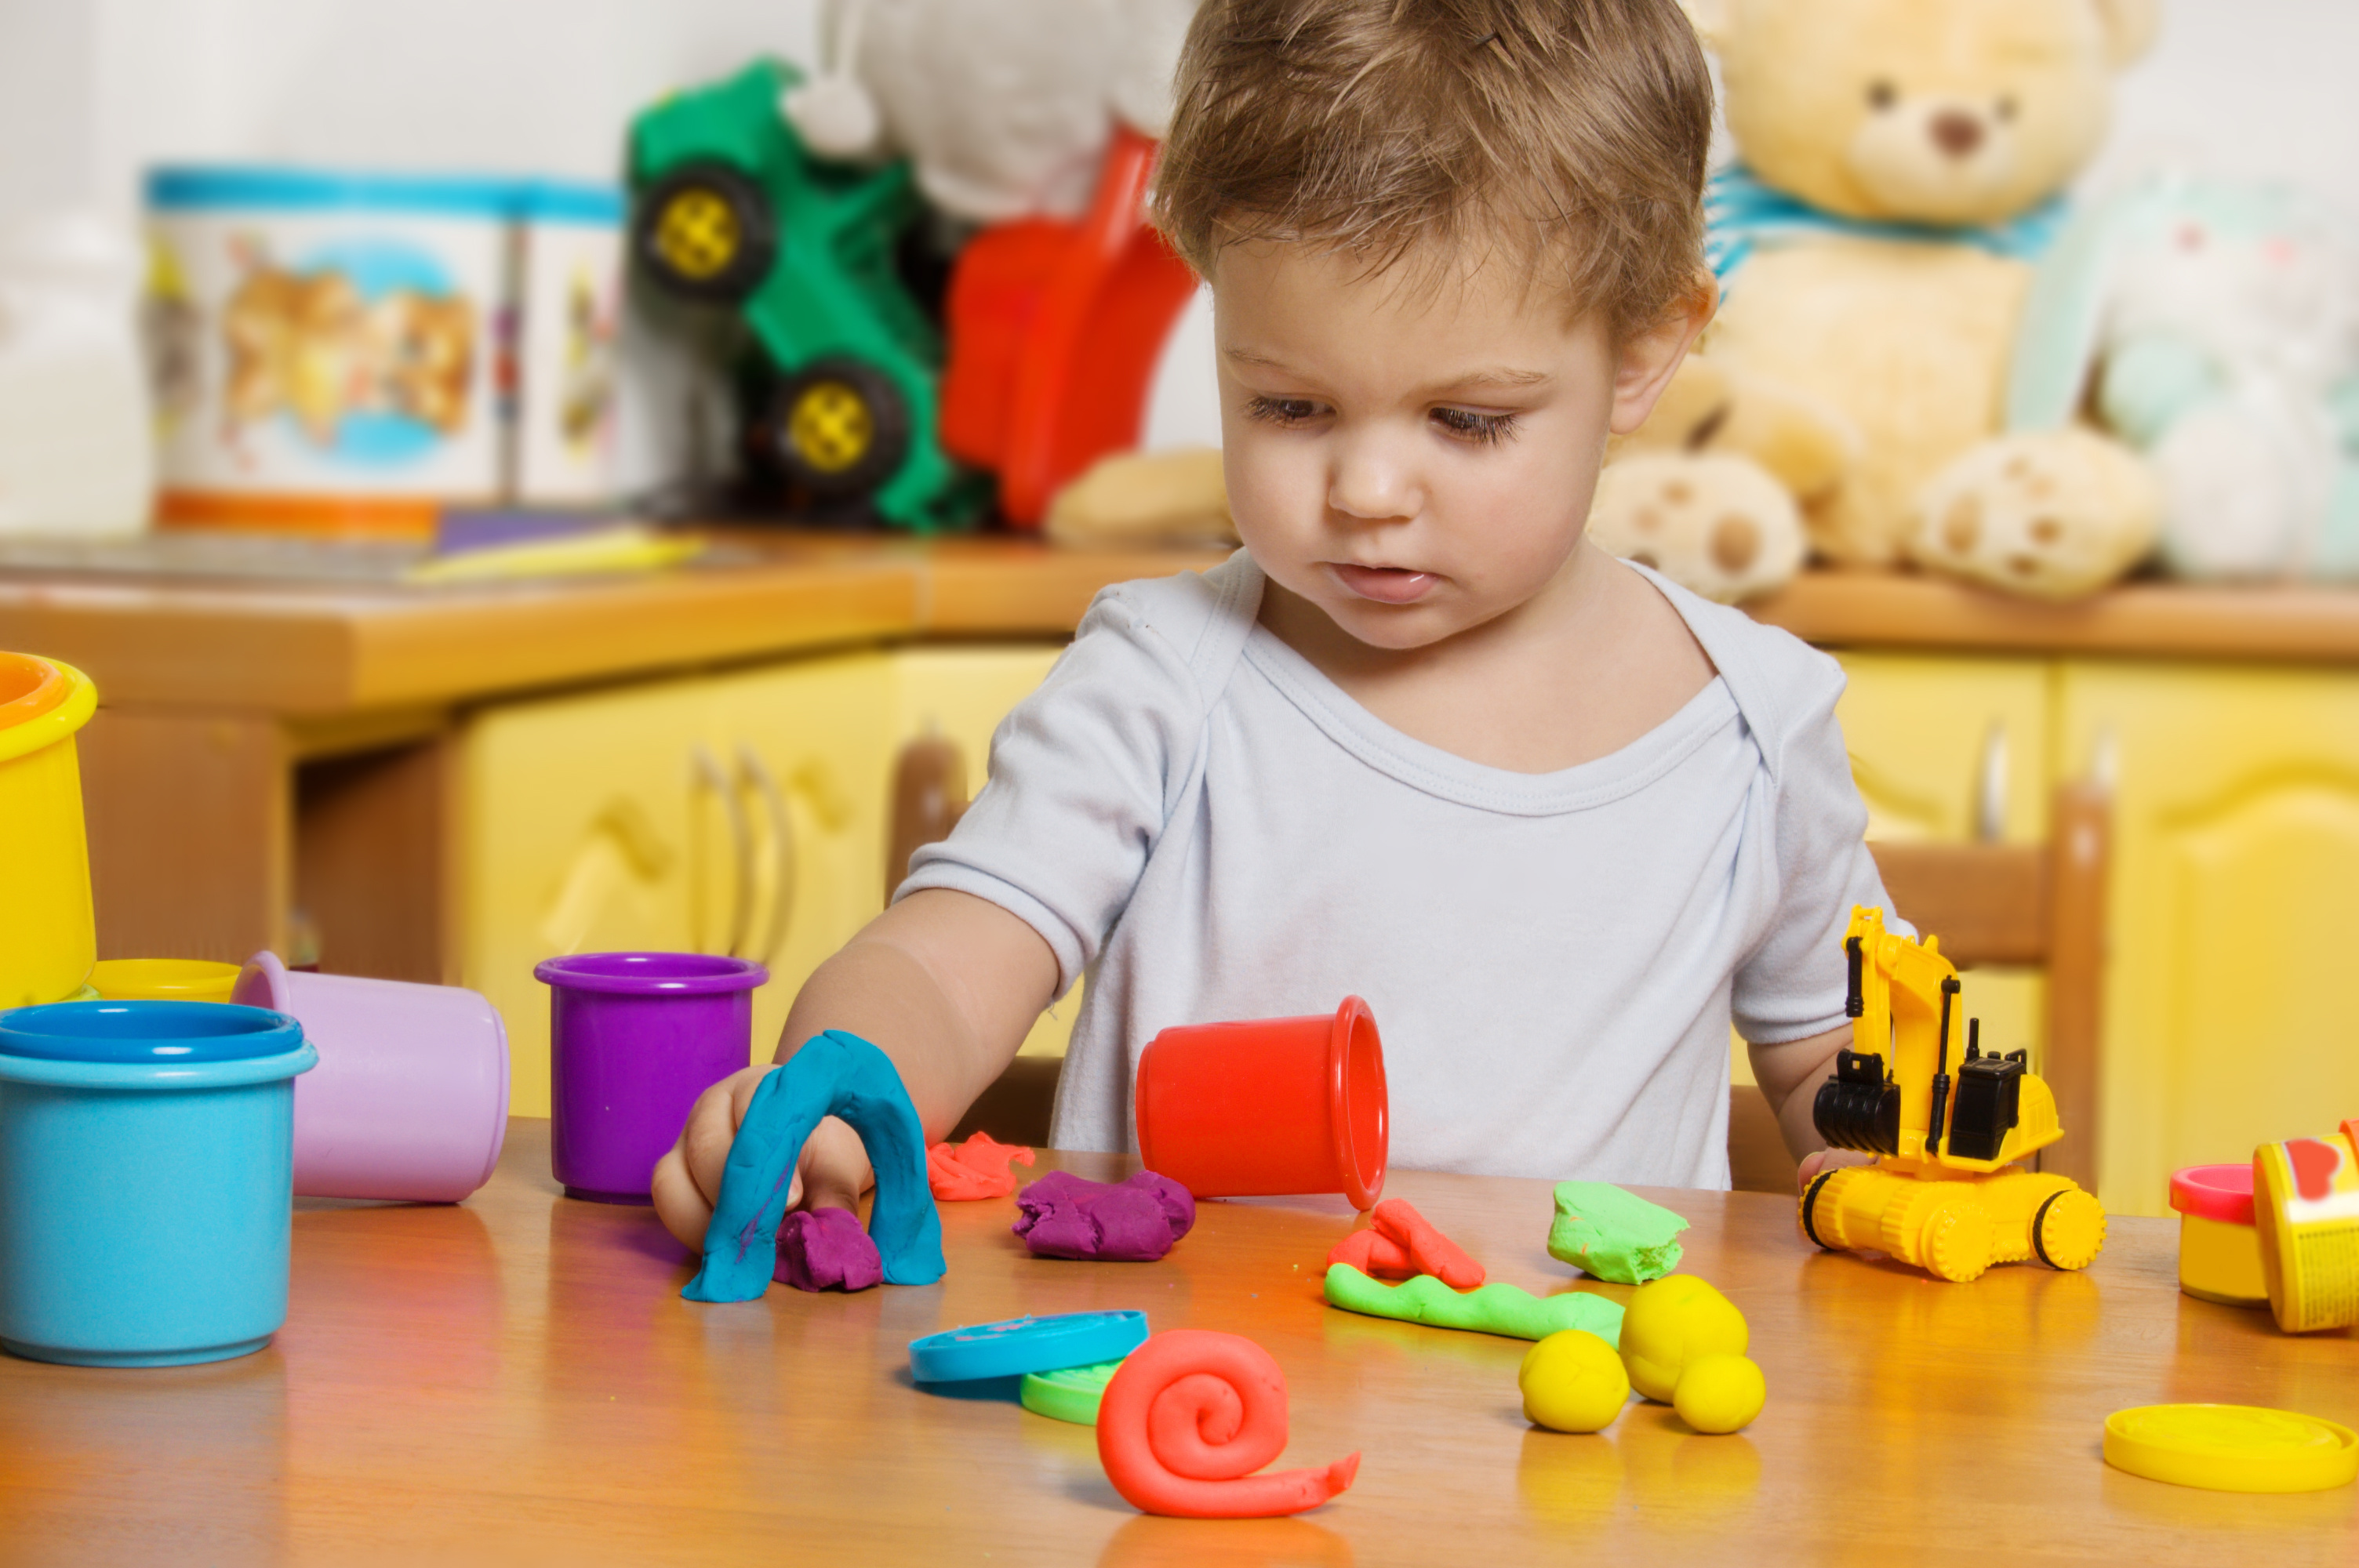 2 years old child playing plasticine in children's room